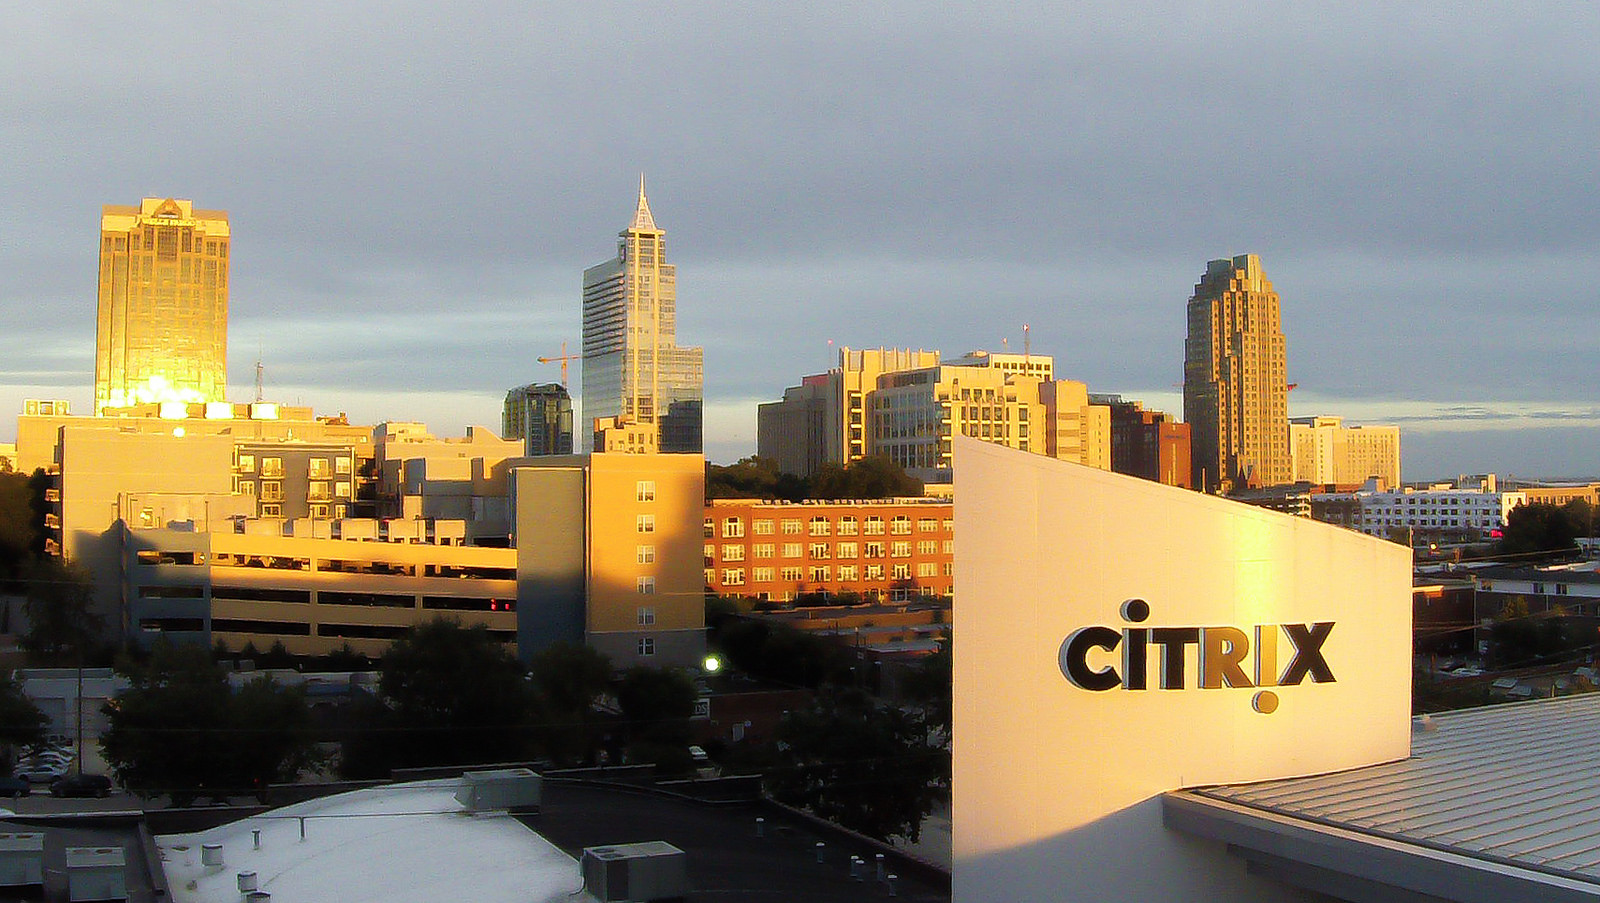 Citrix office in Raleigh, NC.